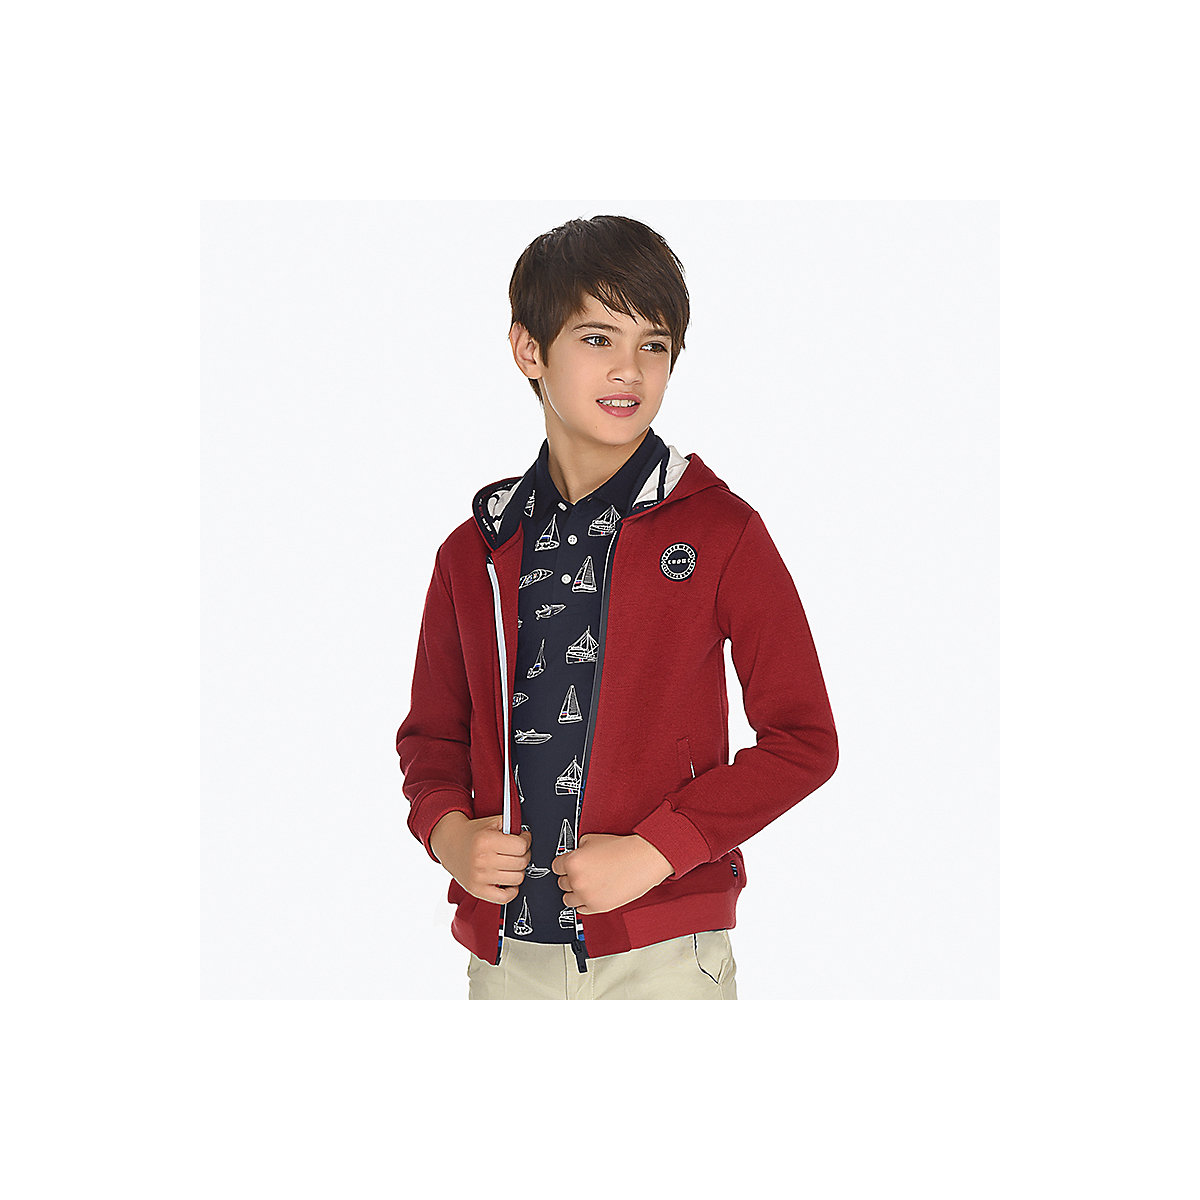 Фото - MAYORAL Hoodies & Sweatshirts 10685394 pullover jumper for boys and girls clothes children's sweatshirt Polyester Boys mayoral sweaters 10692403 pullover jumper for boys and girls jackets boys